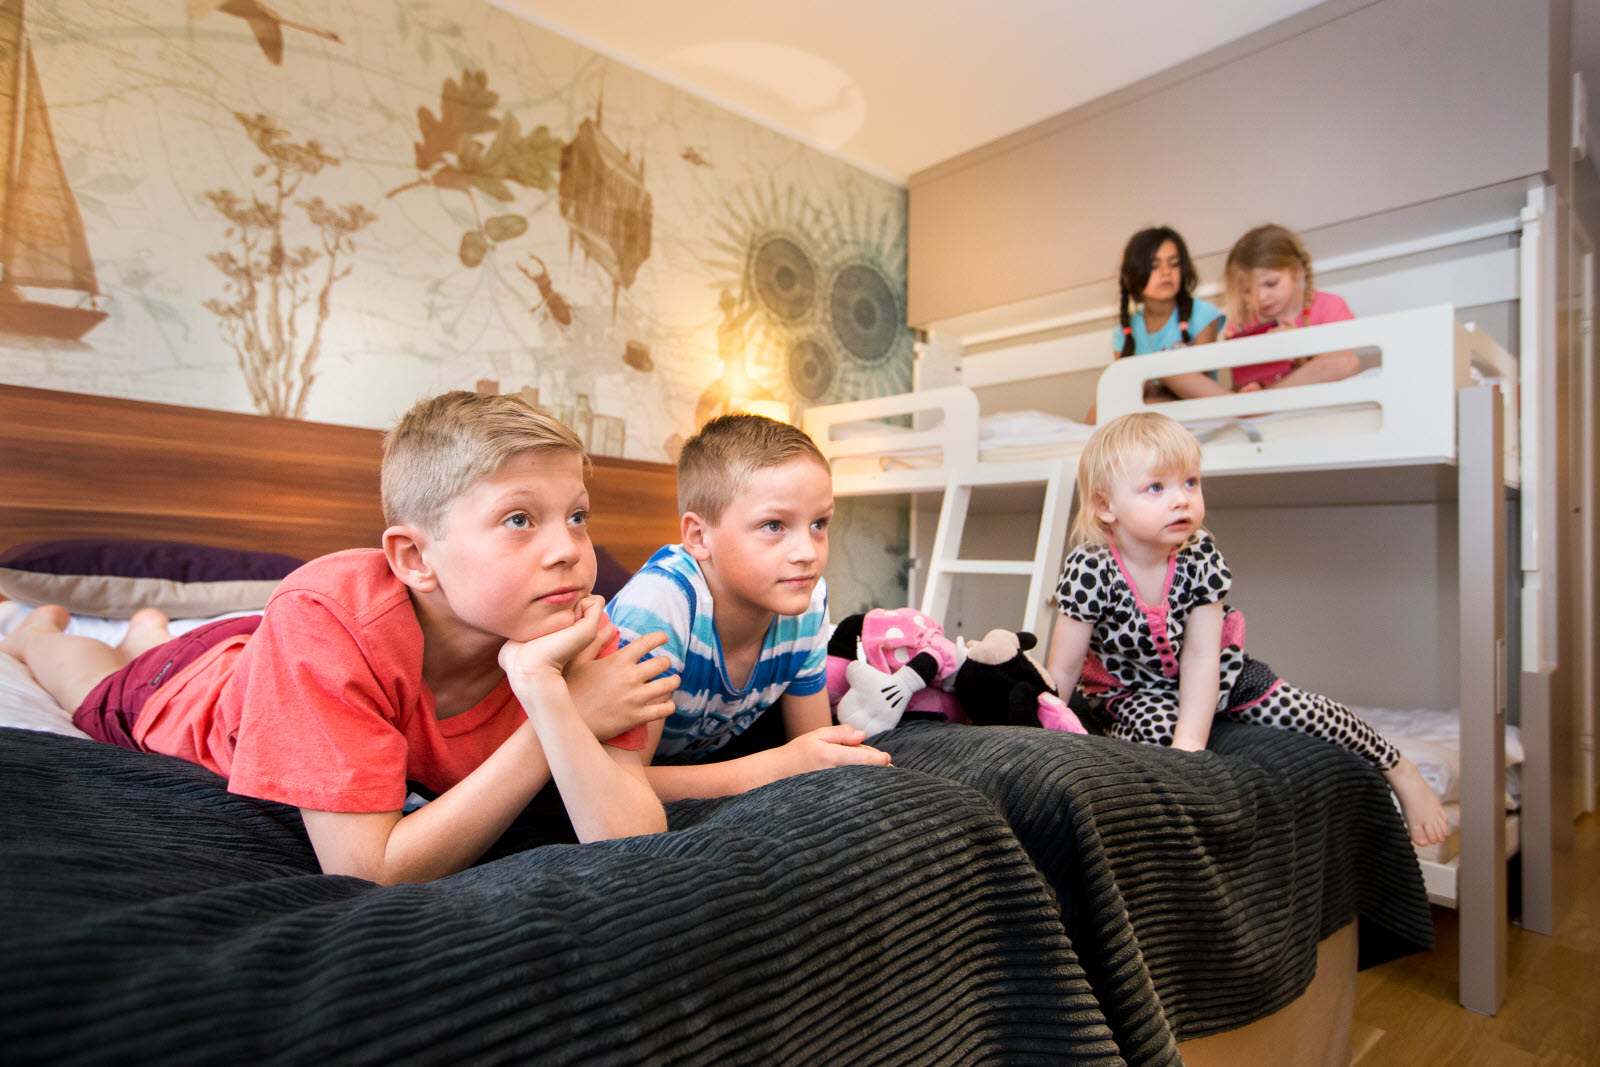 Kids in family room